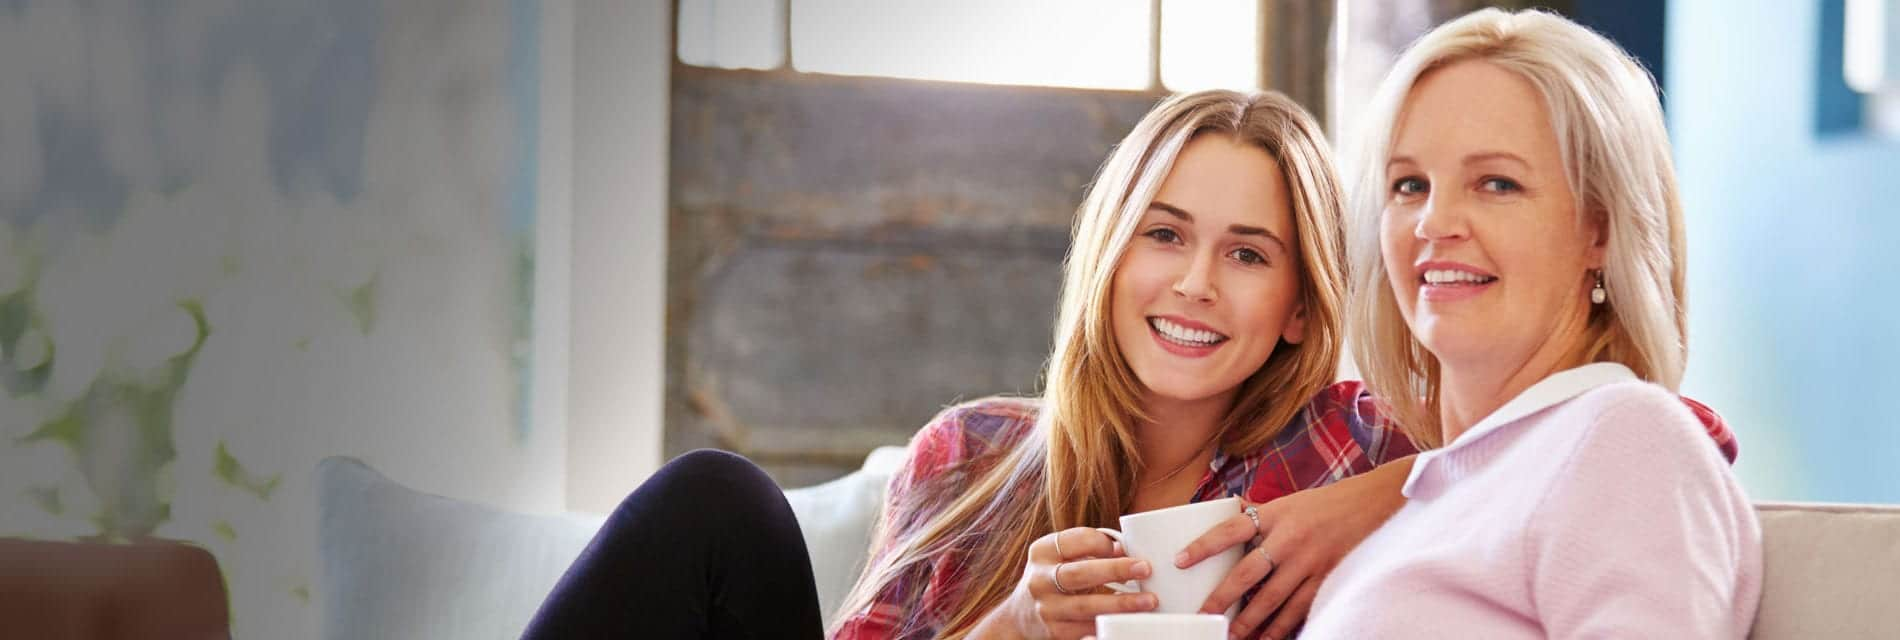 two smiling women with coffee cups